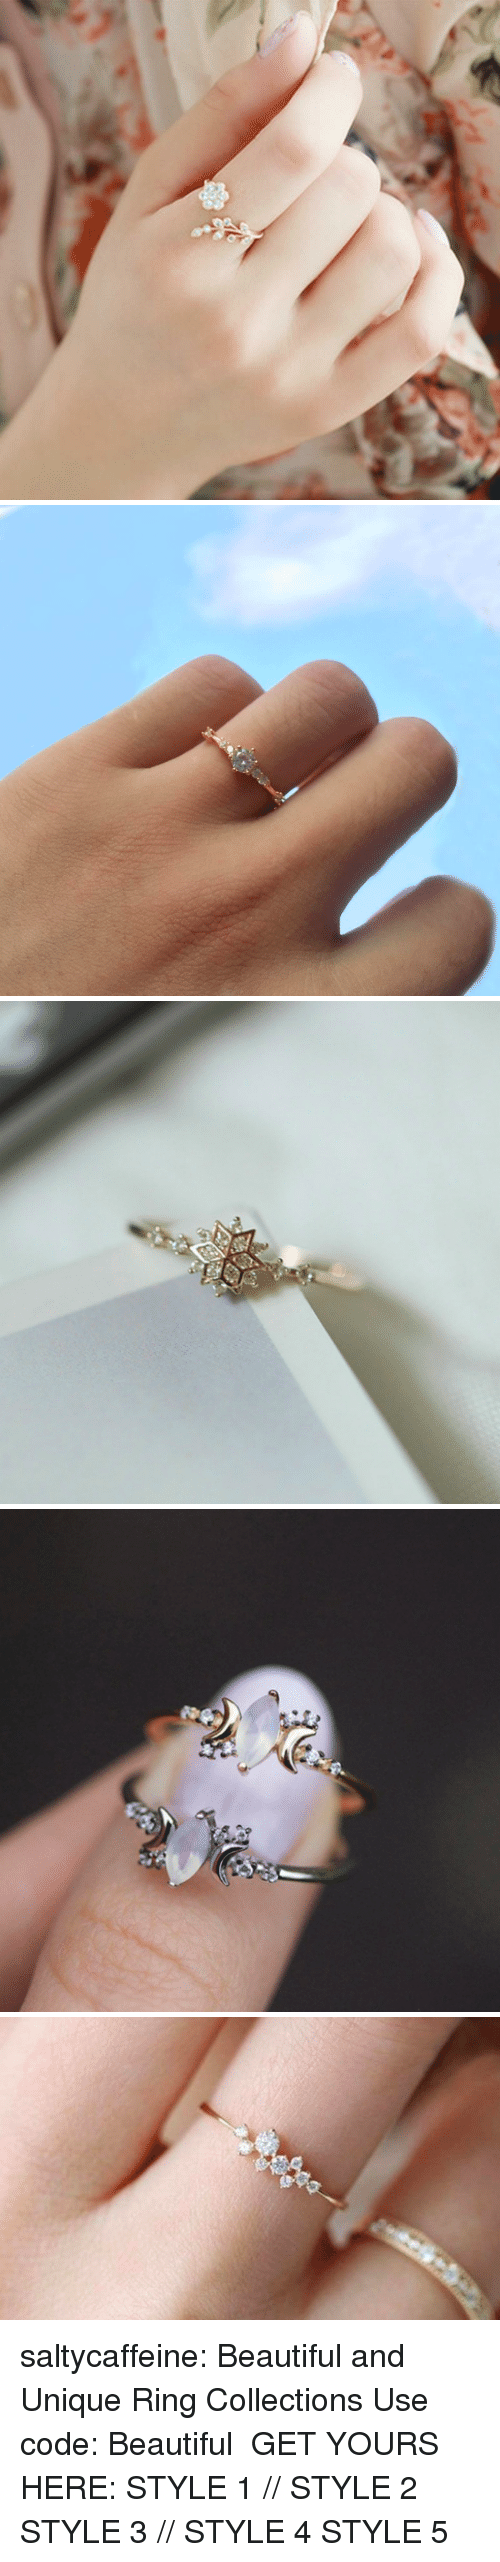 Beautiful, Target, and Tumblr: saltycaffeine: Beautiful and Unique Ring Collections Use code: Beautiful GET YOURS HERE:  STYLE 1 // STYLE 2  STYLE 3 // STYLE 4  STYLE 5